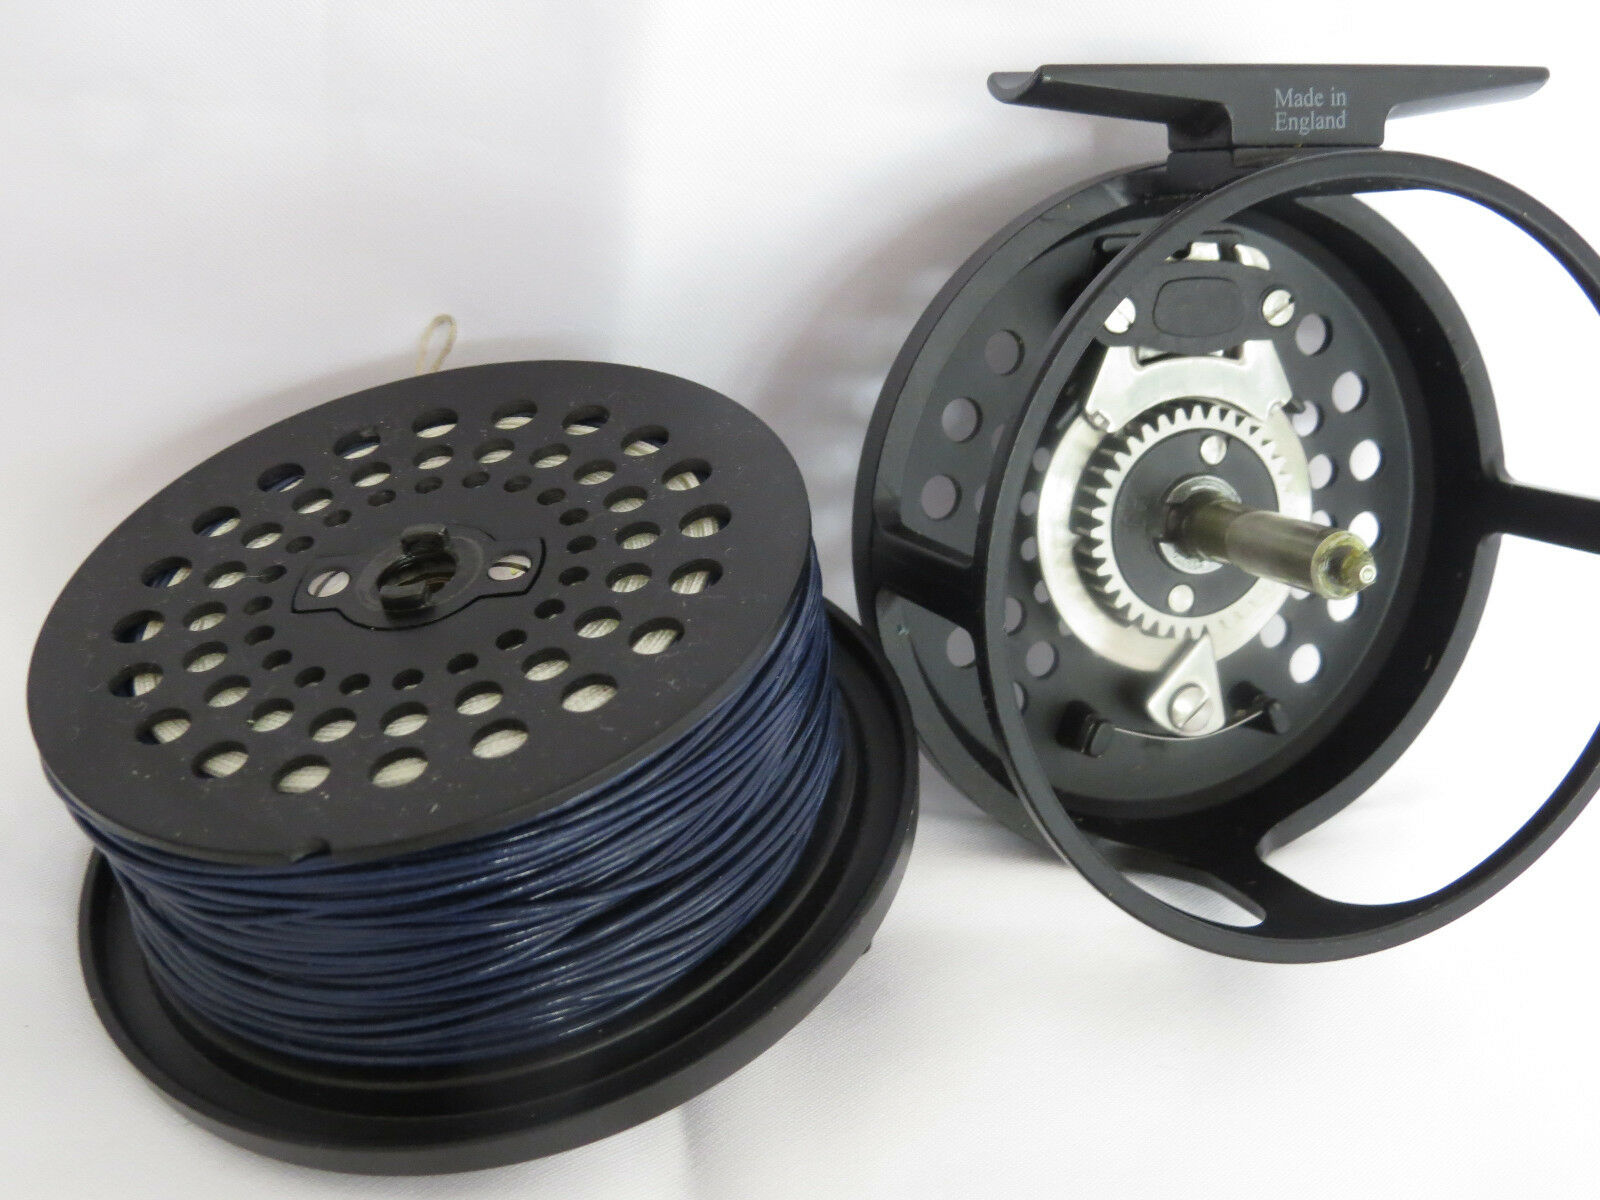 SCIENTIFIC ANGLERS 1011 SYSTEM 2 SALMON REEL 10/11  MADE IN ENGLAND  10/11 REEL b0b100